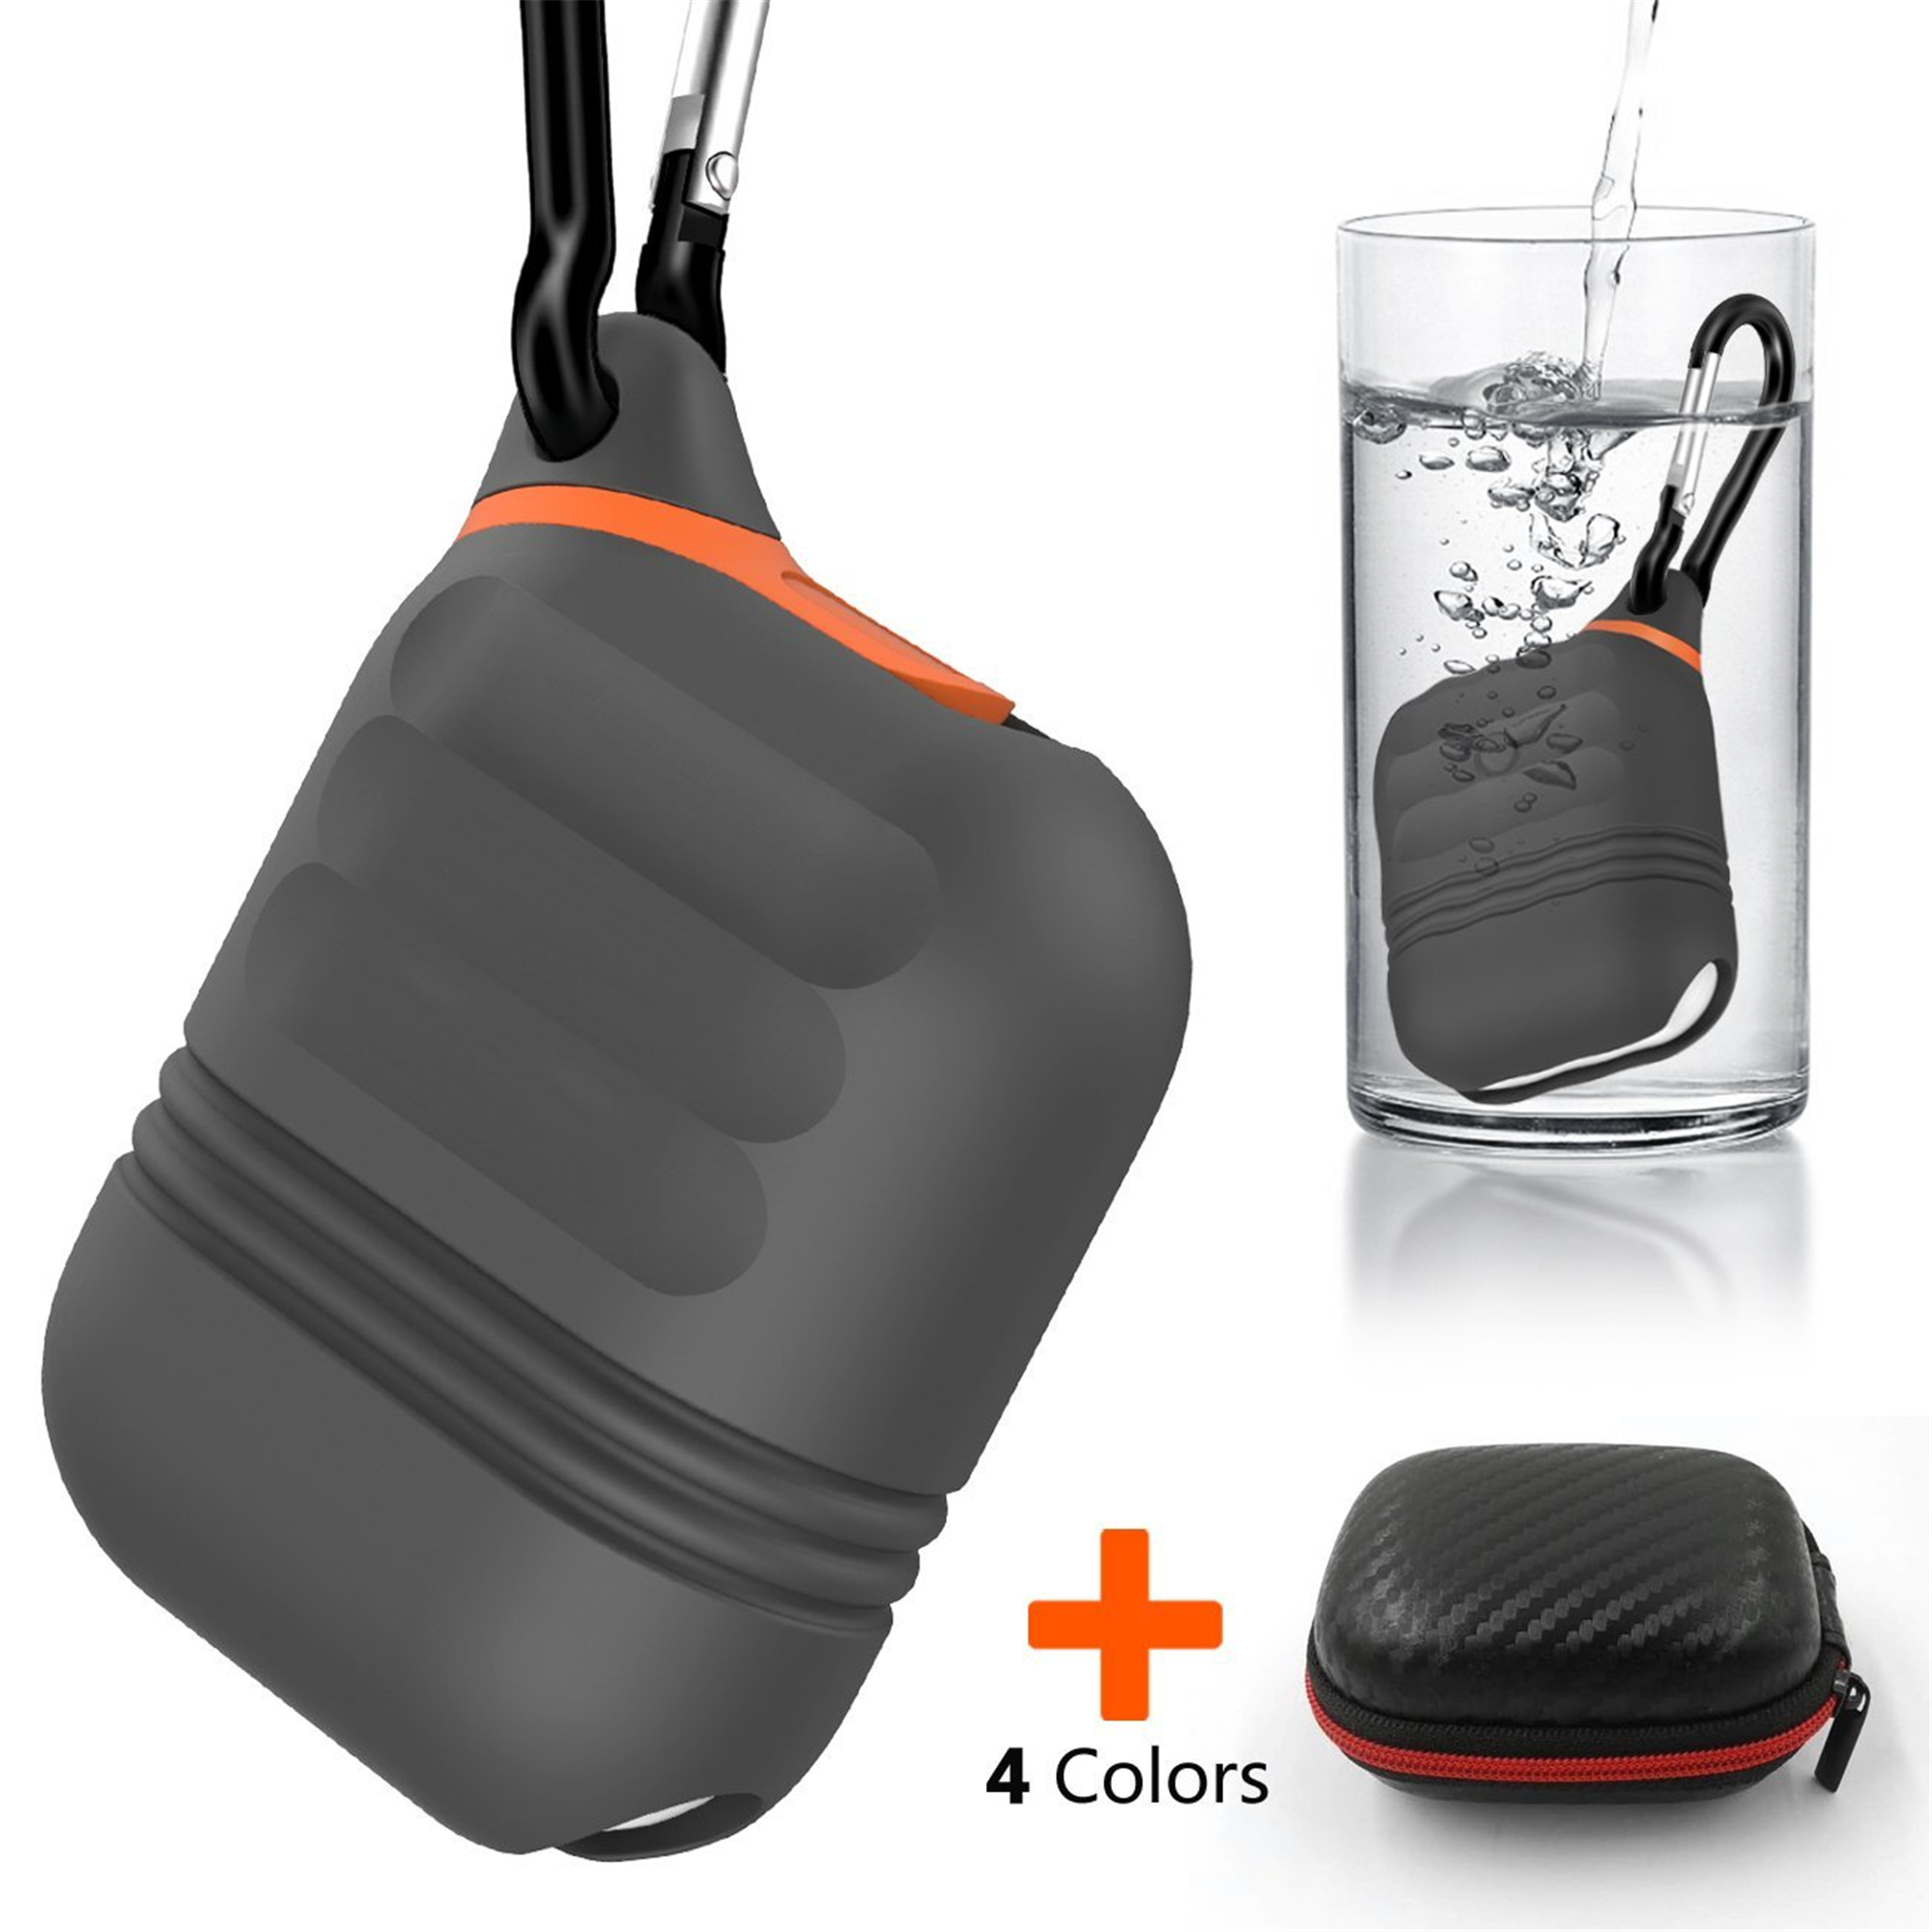 3 in 1 Protect Kit for Airpods, Silicone Waterproof Shock Resistant AirPods Case Cover,Premium Zipper Hard Case with Detachable Carabiner.(Black)